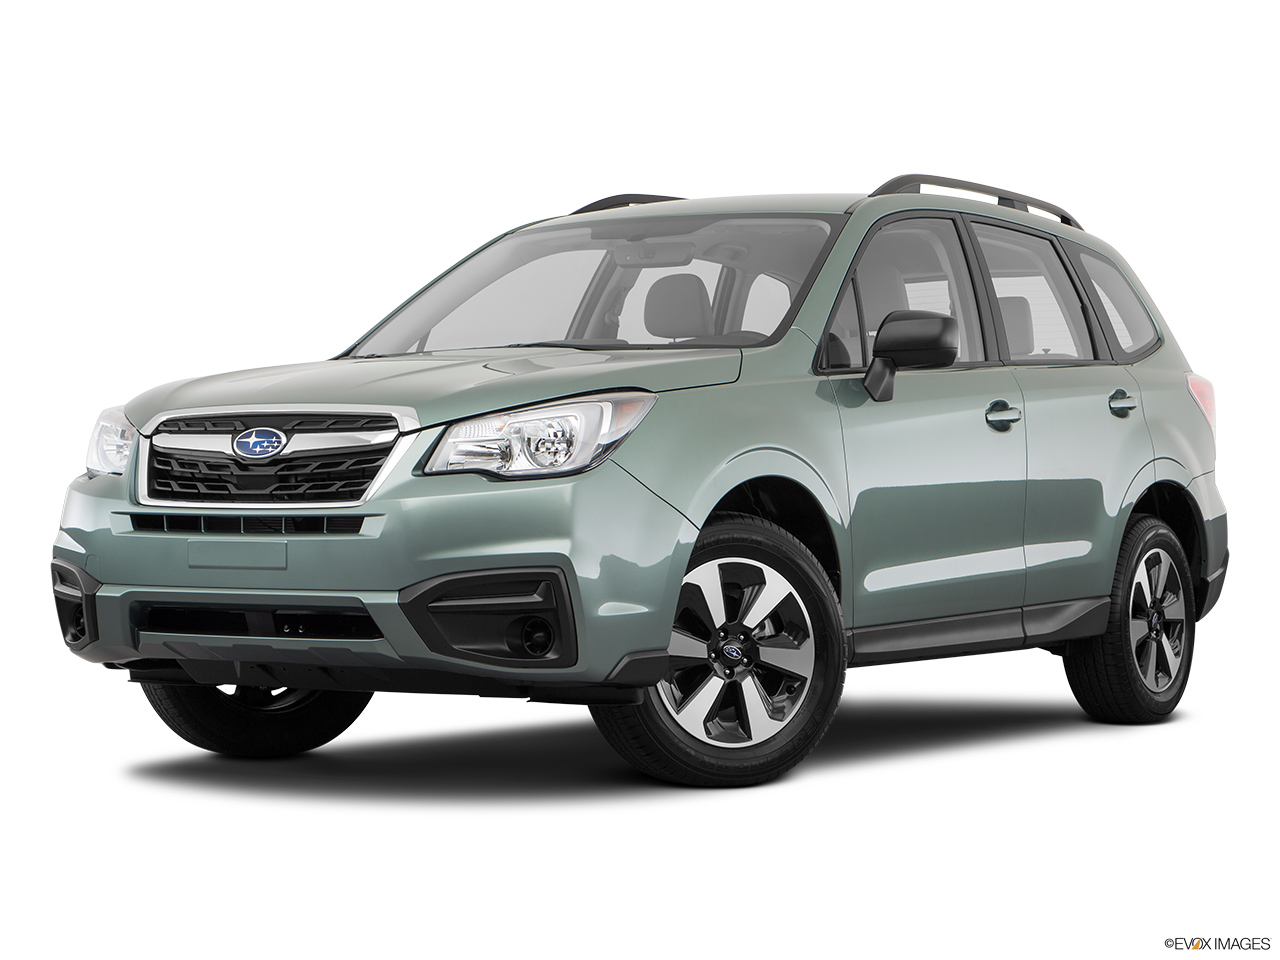 Car Lease Vancouver >> Lease a 2018 Subaru Forester 2.5i Manual AWD in Canada ...